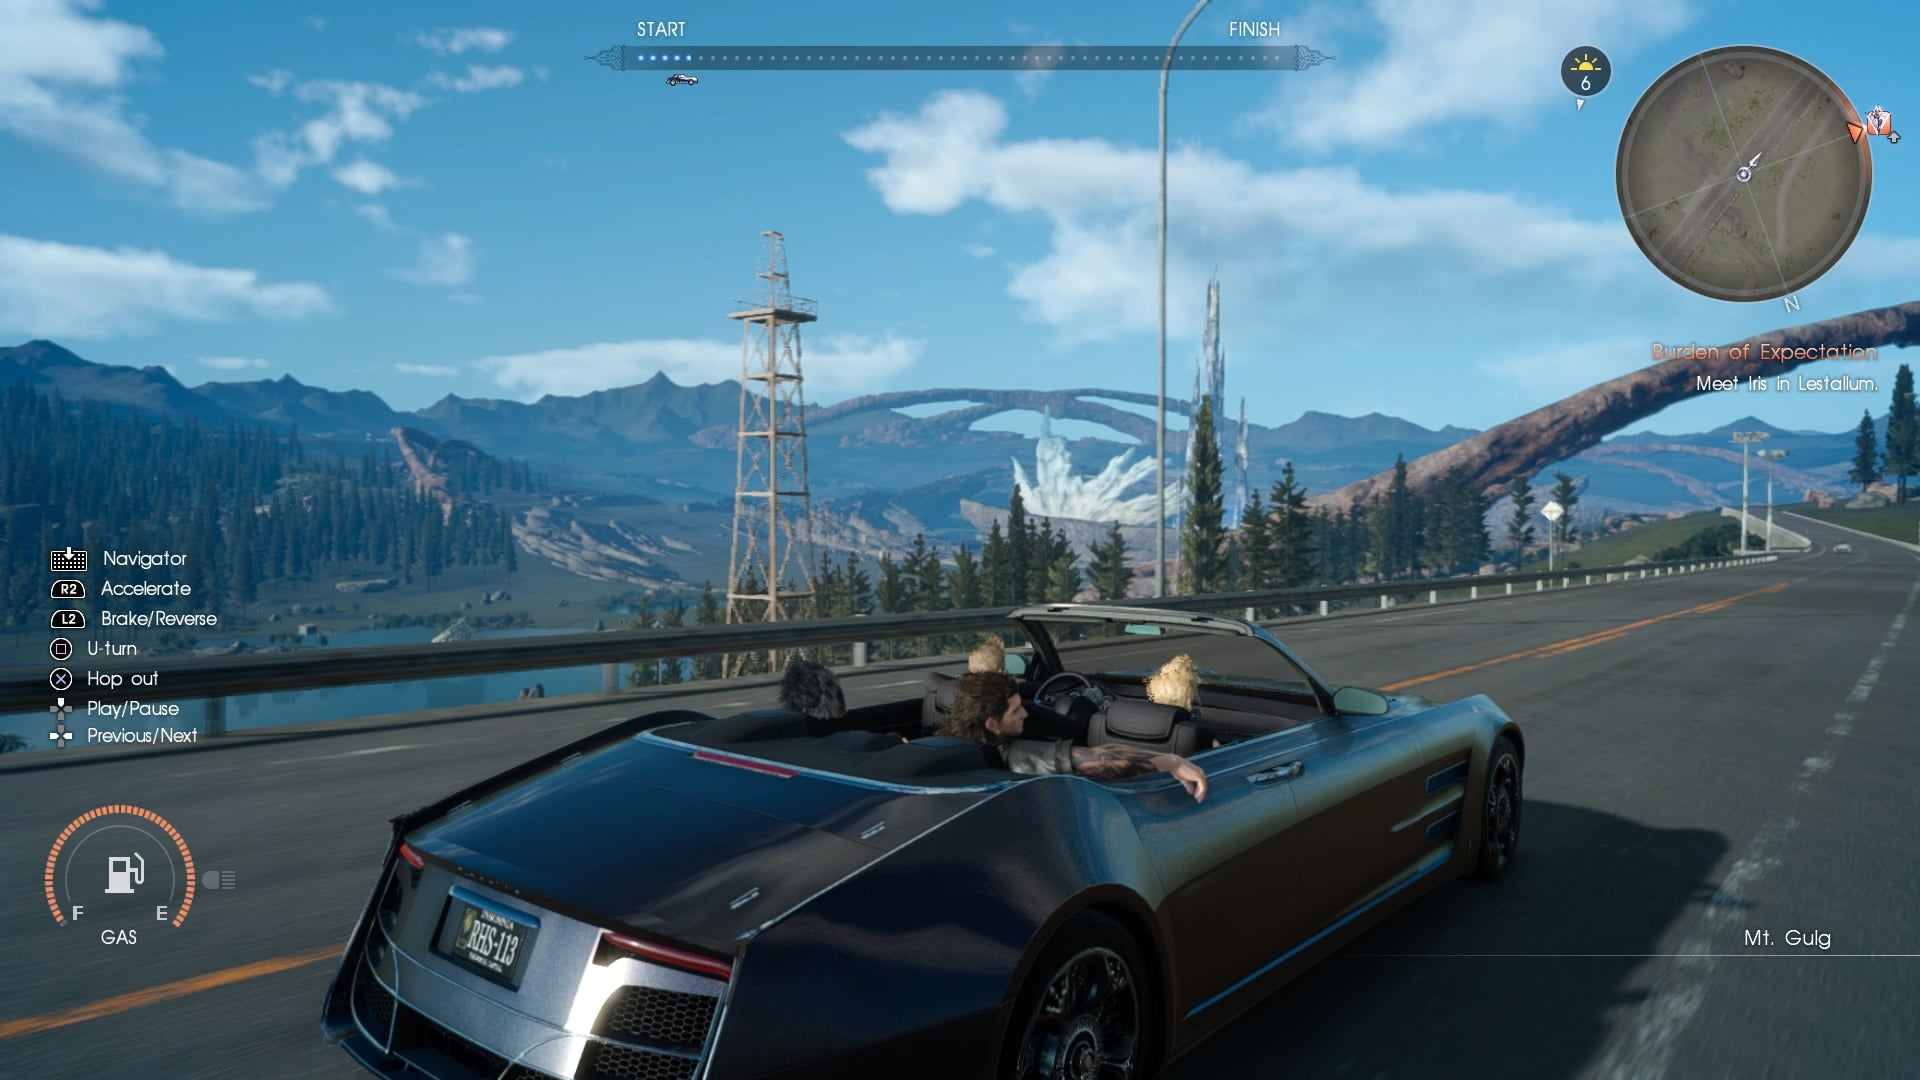 Final Fantasy XV Chapter 13 Update To Launch Alongside Episode Gladio